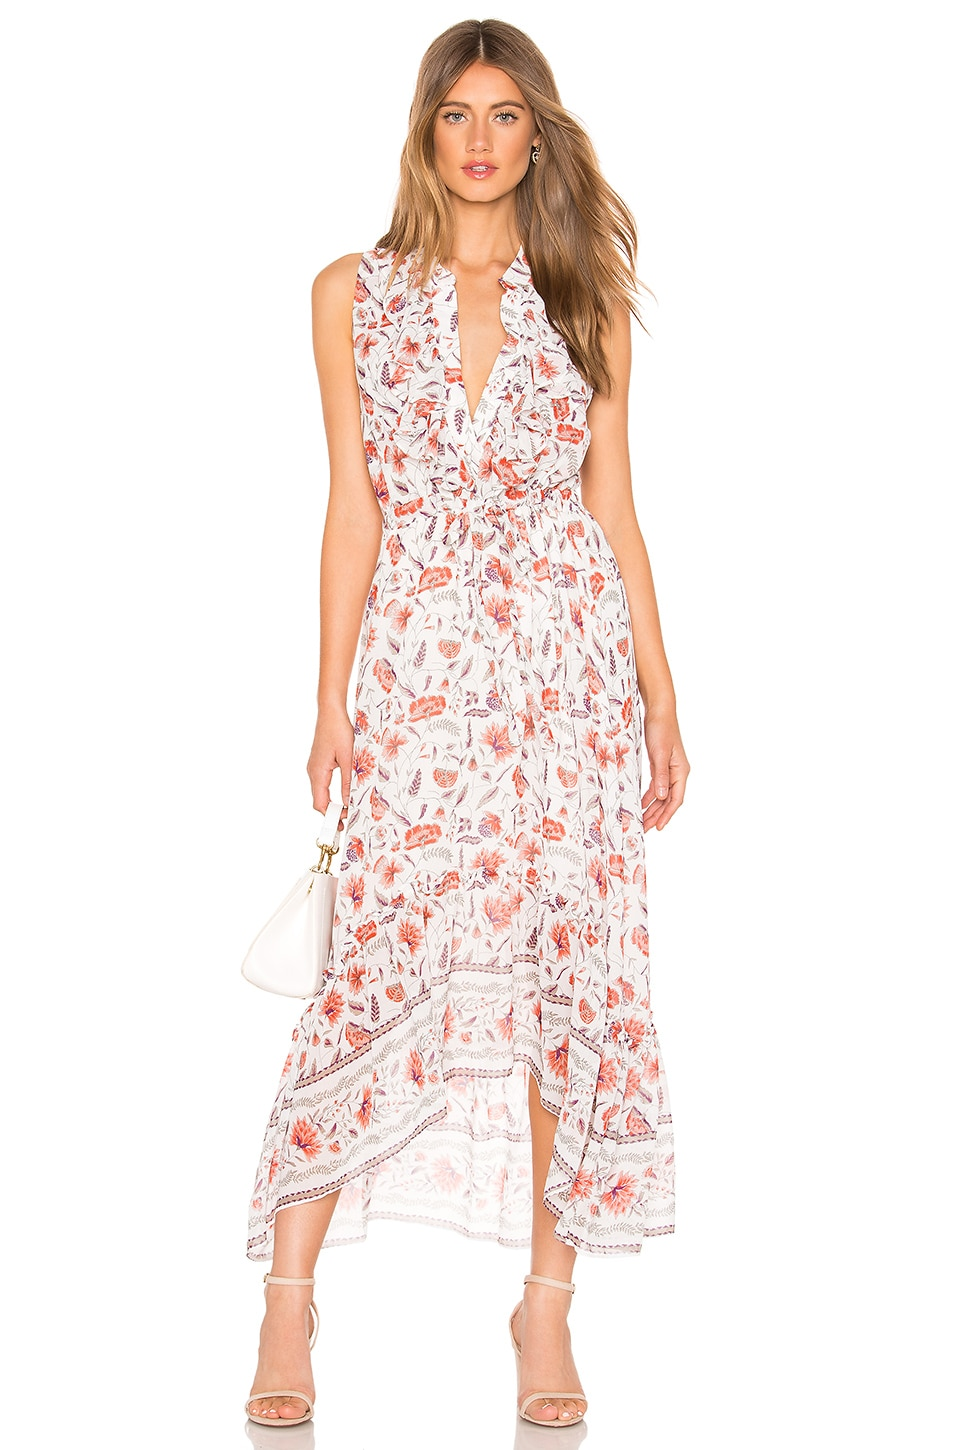 MISA Los Angeles Audra Dress in White & Red Floral